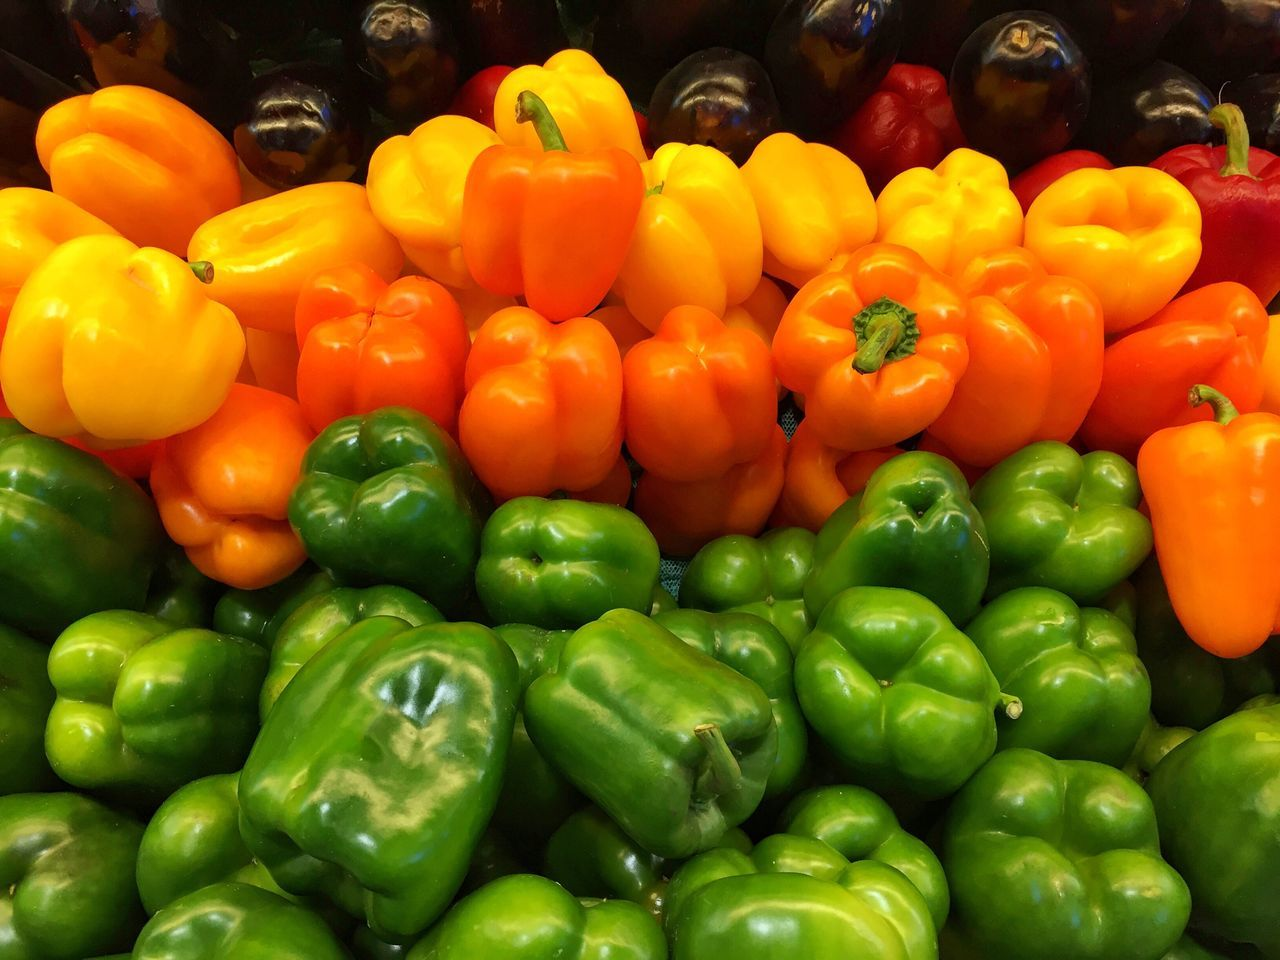 Bell Pepper Vegetable Green Bell Pepper Red Bell Pepper Abundance Yellow Bell Pepper Freshness Healthy Eating Pepper - Vegetable Large Group Of Objects Market Food And Drink Food Retail  Backgrounds Variation Full Frame No People Comida Saludable Pimientos Pimiento Pimiento Amarillo Pimientos Rojos Mercado